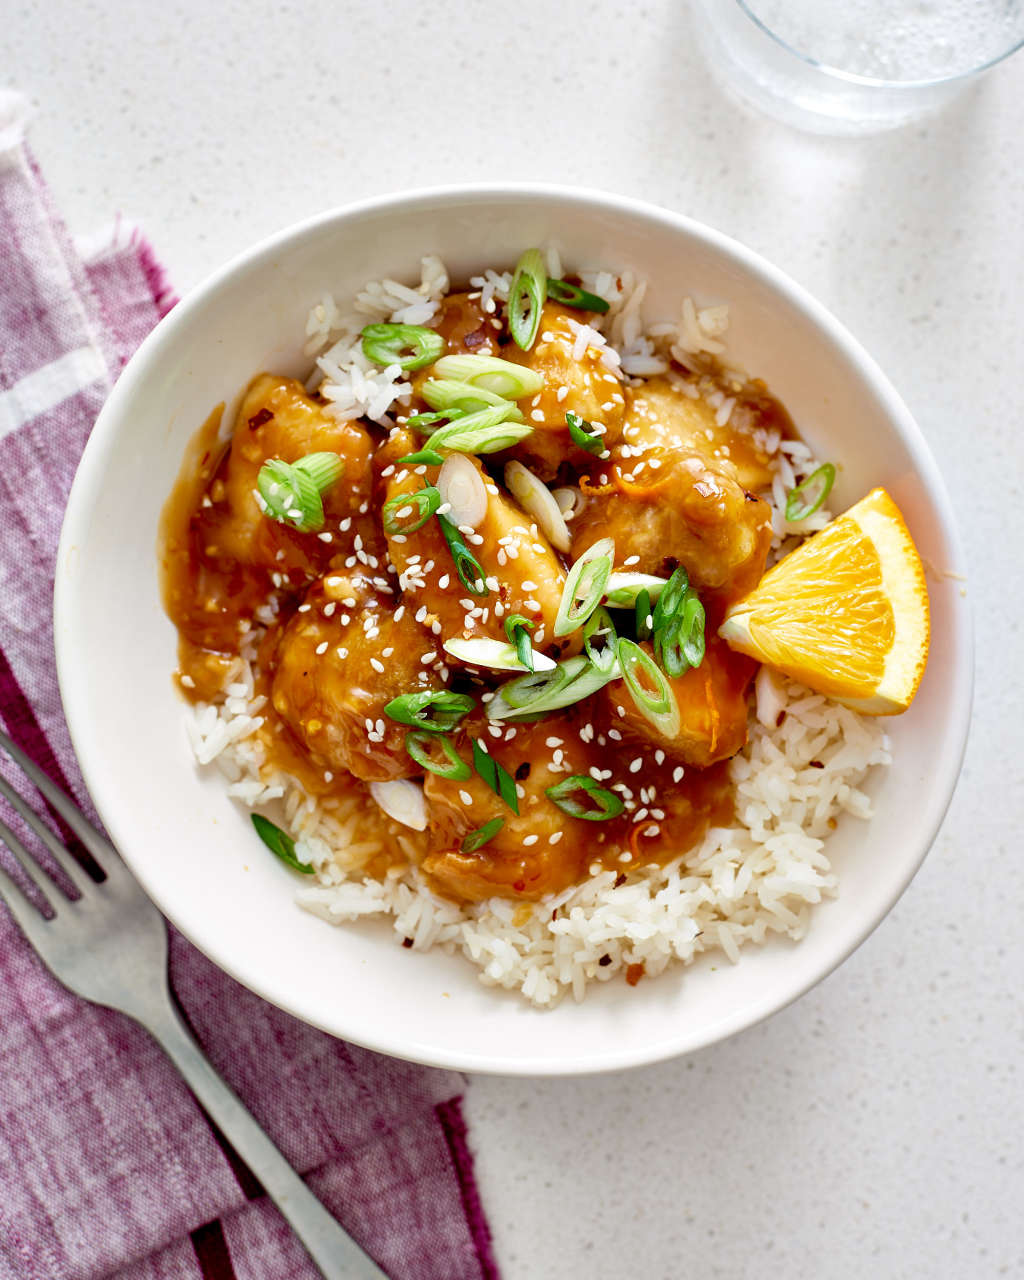 This Slow Cooker Orange Chicken Is Better than Takeout